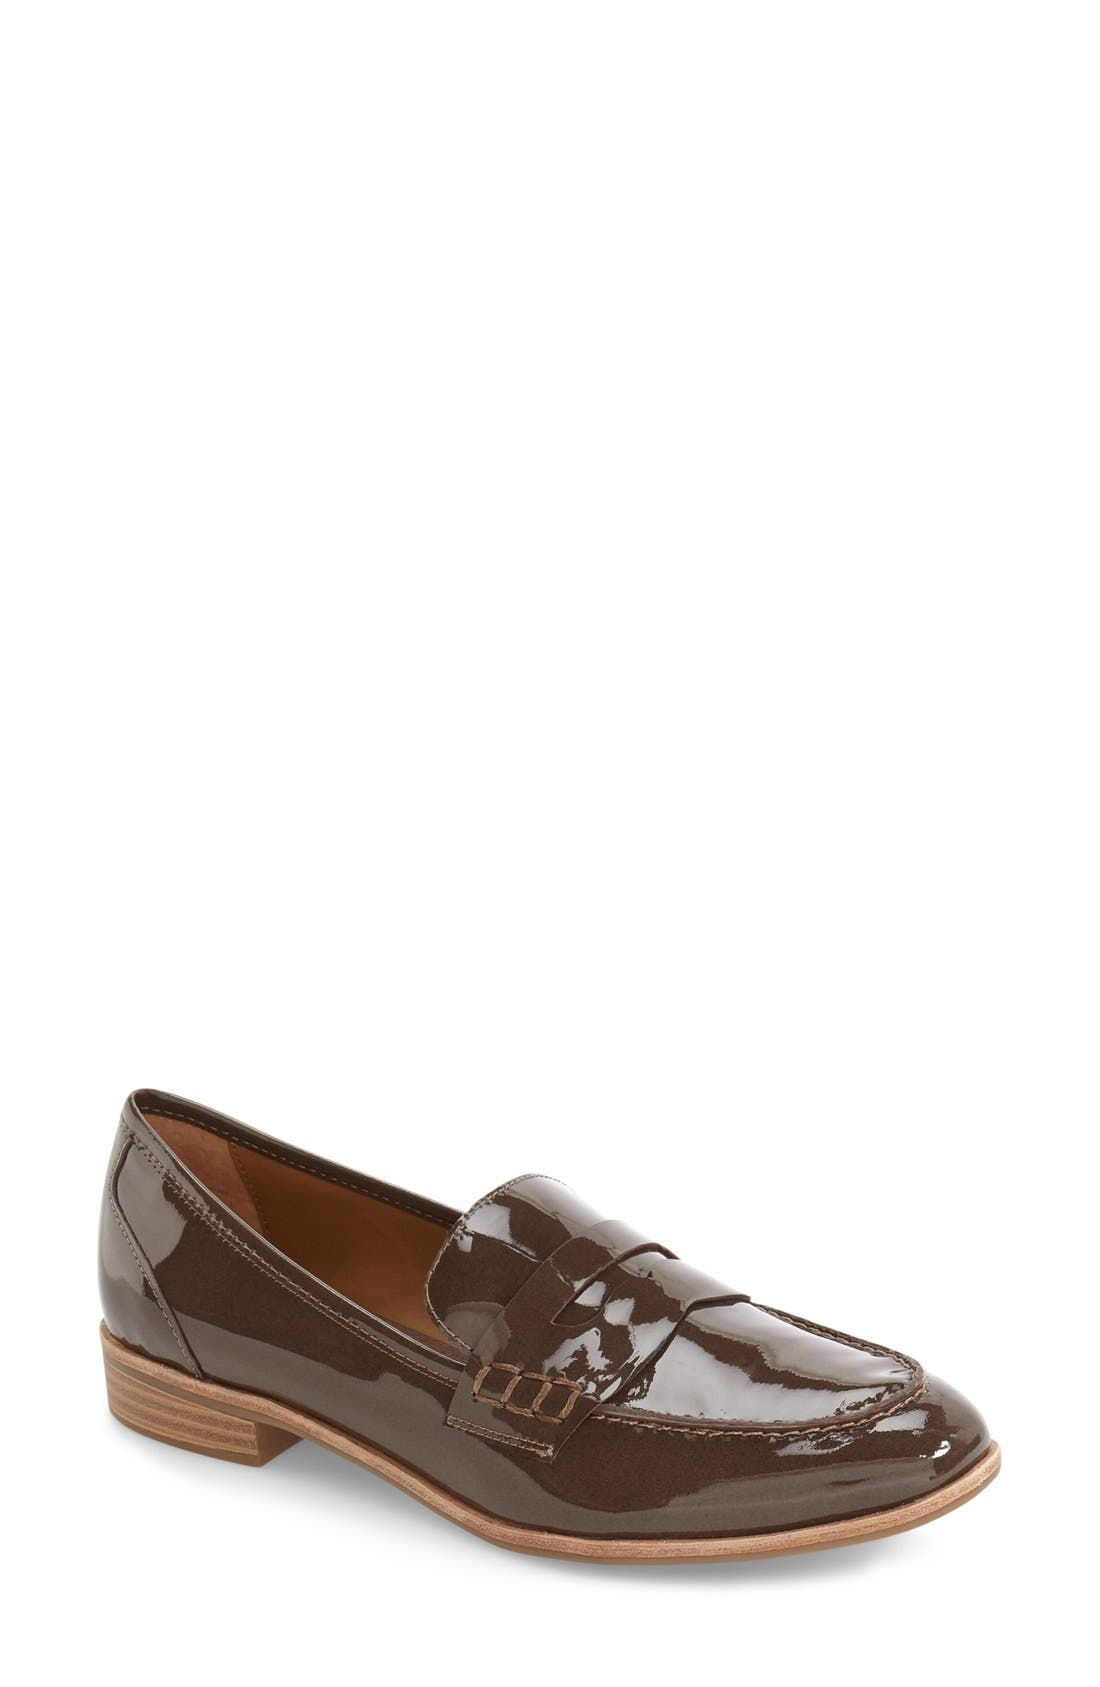 Alternate Image 1 Selected - G.H. Bass & Co. Emilia Penny Loafer (Women)